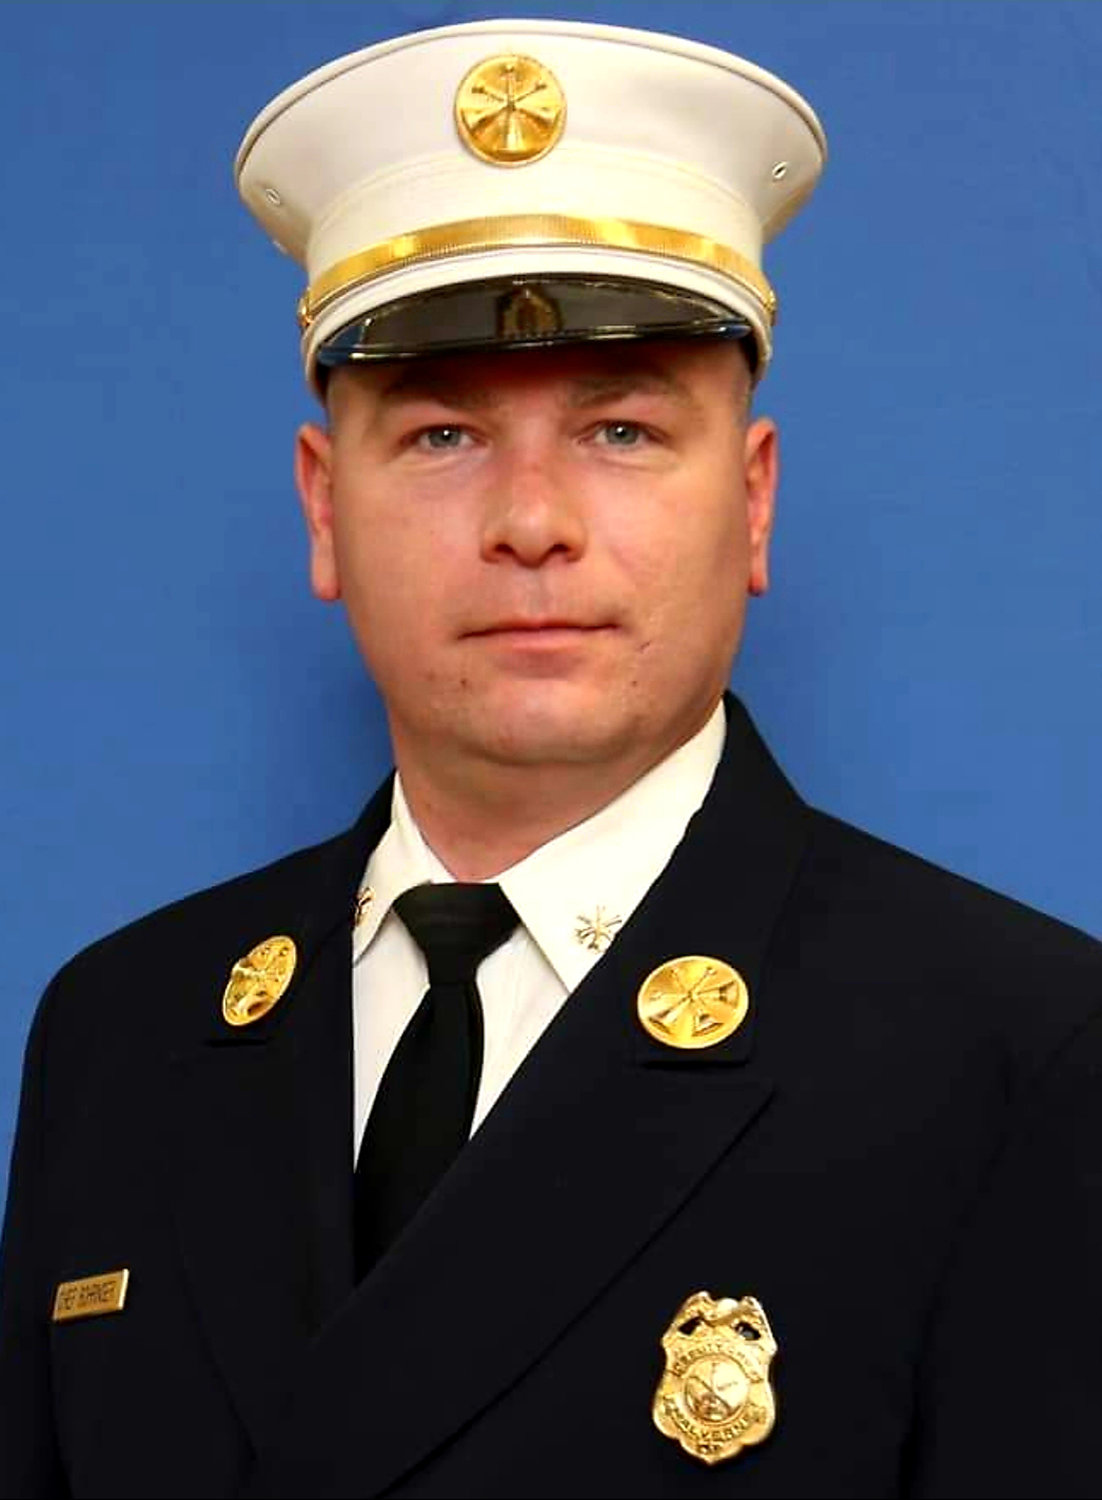 Second Deputy Chief Ernest Bohringer, of the Malverne Volunteer Fire Department.